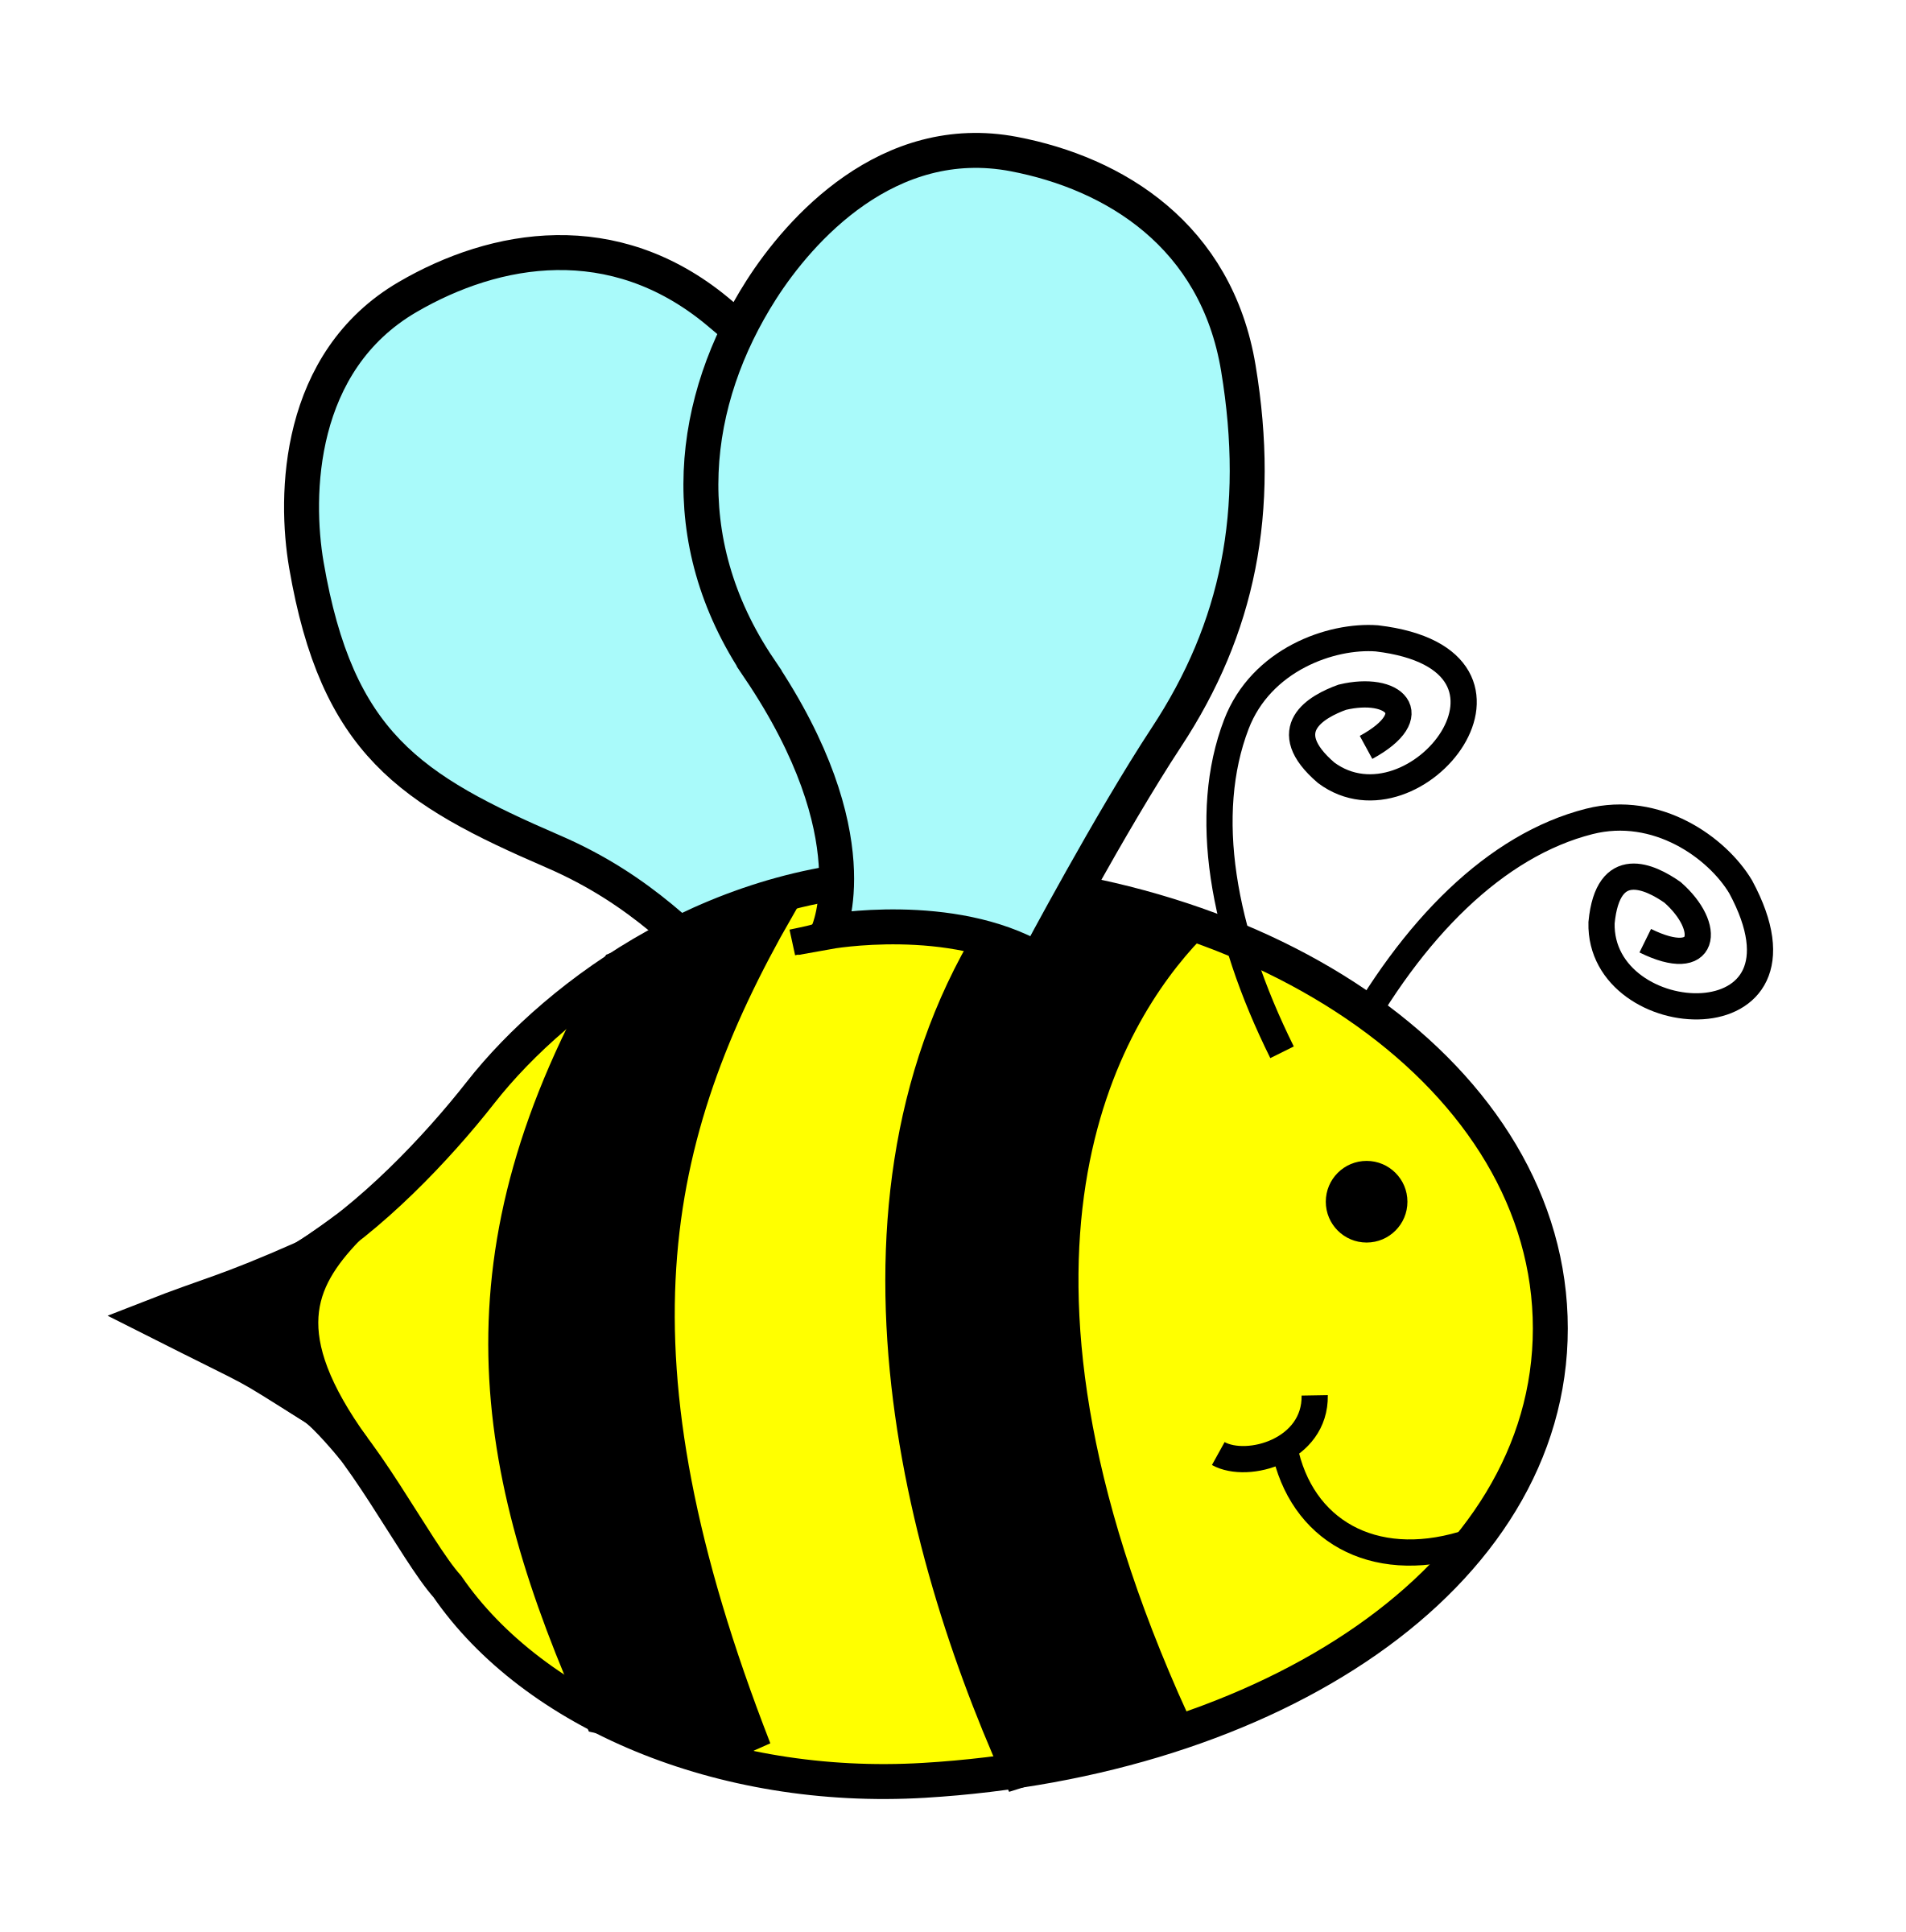 picture freeuse stock Bumble clipart big bee. Image png